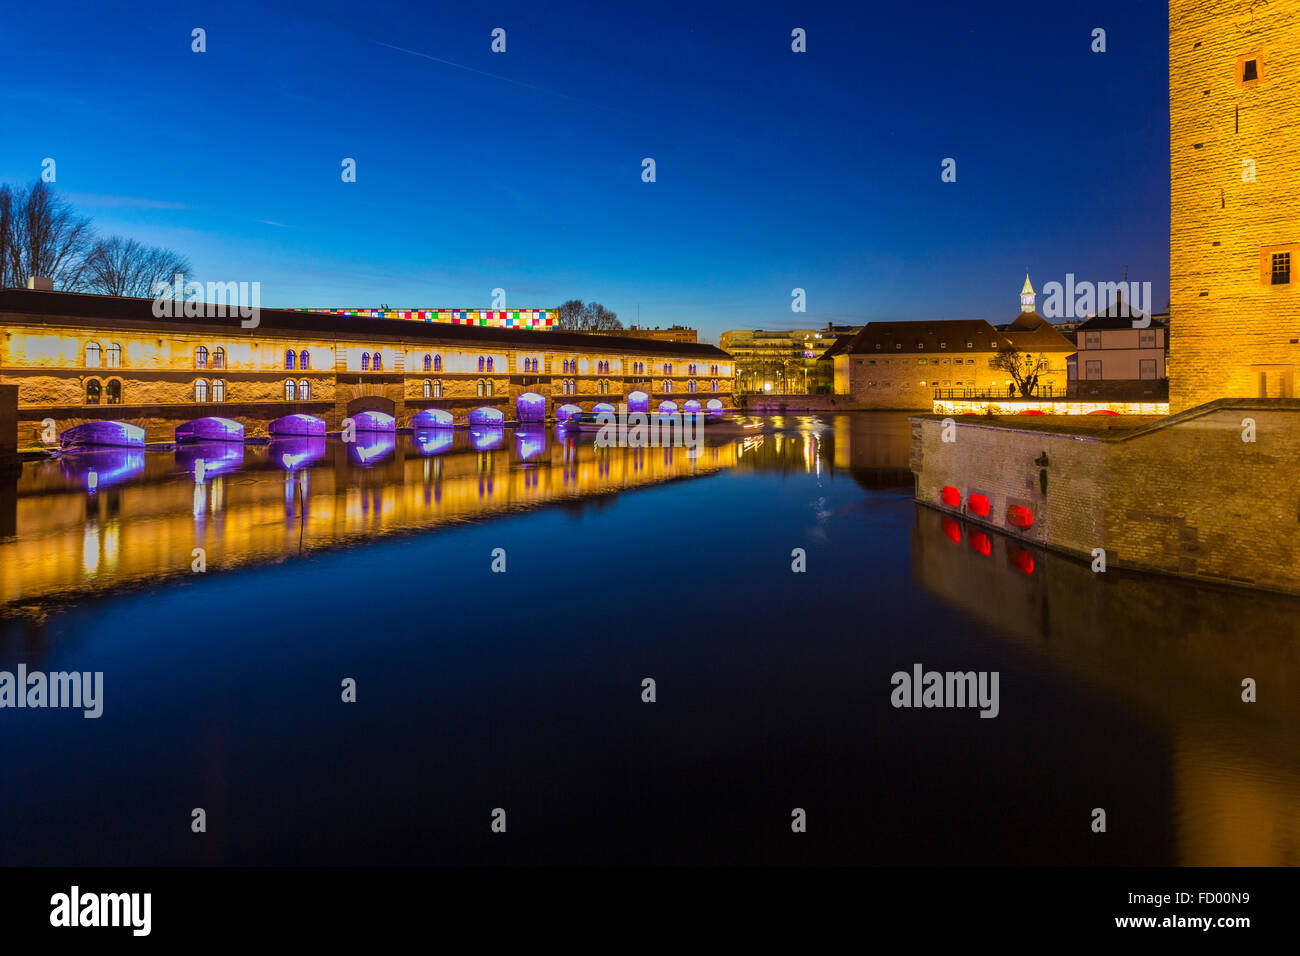 illumined Barrage Vauban at twilight reflected in the waters of the River Ill, Alsace France - Stock Image